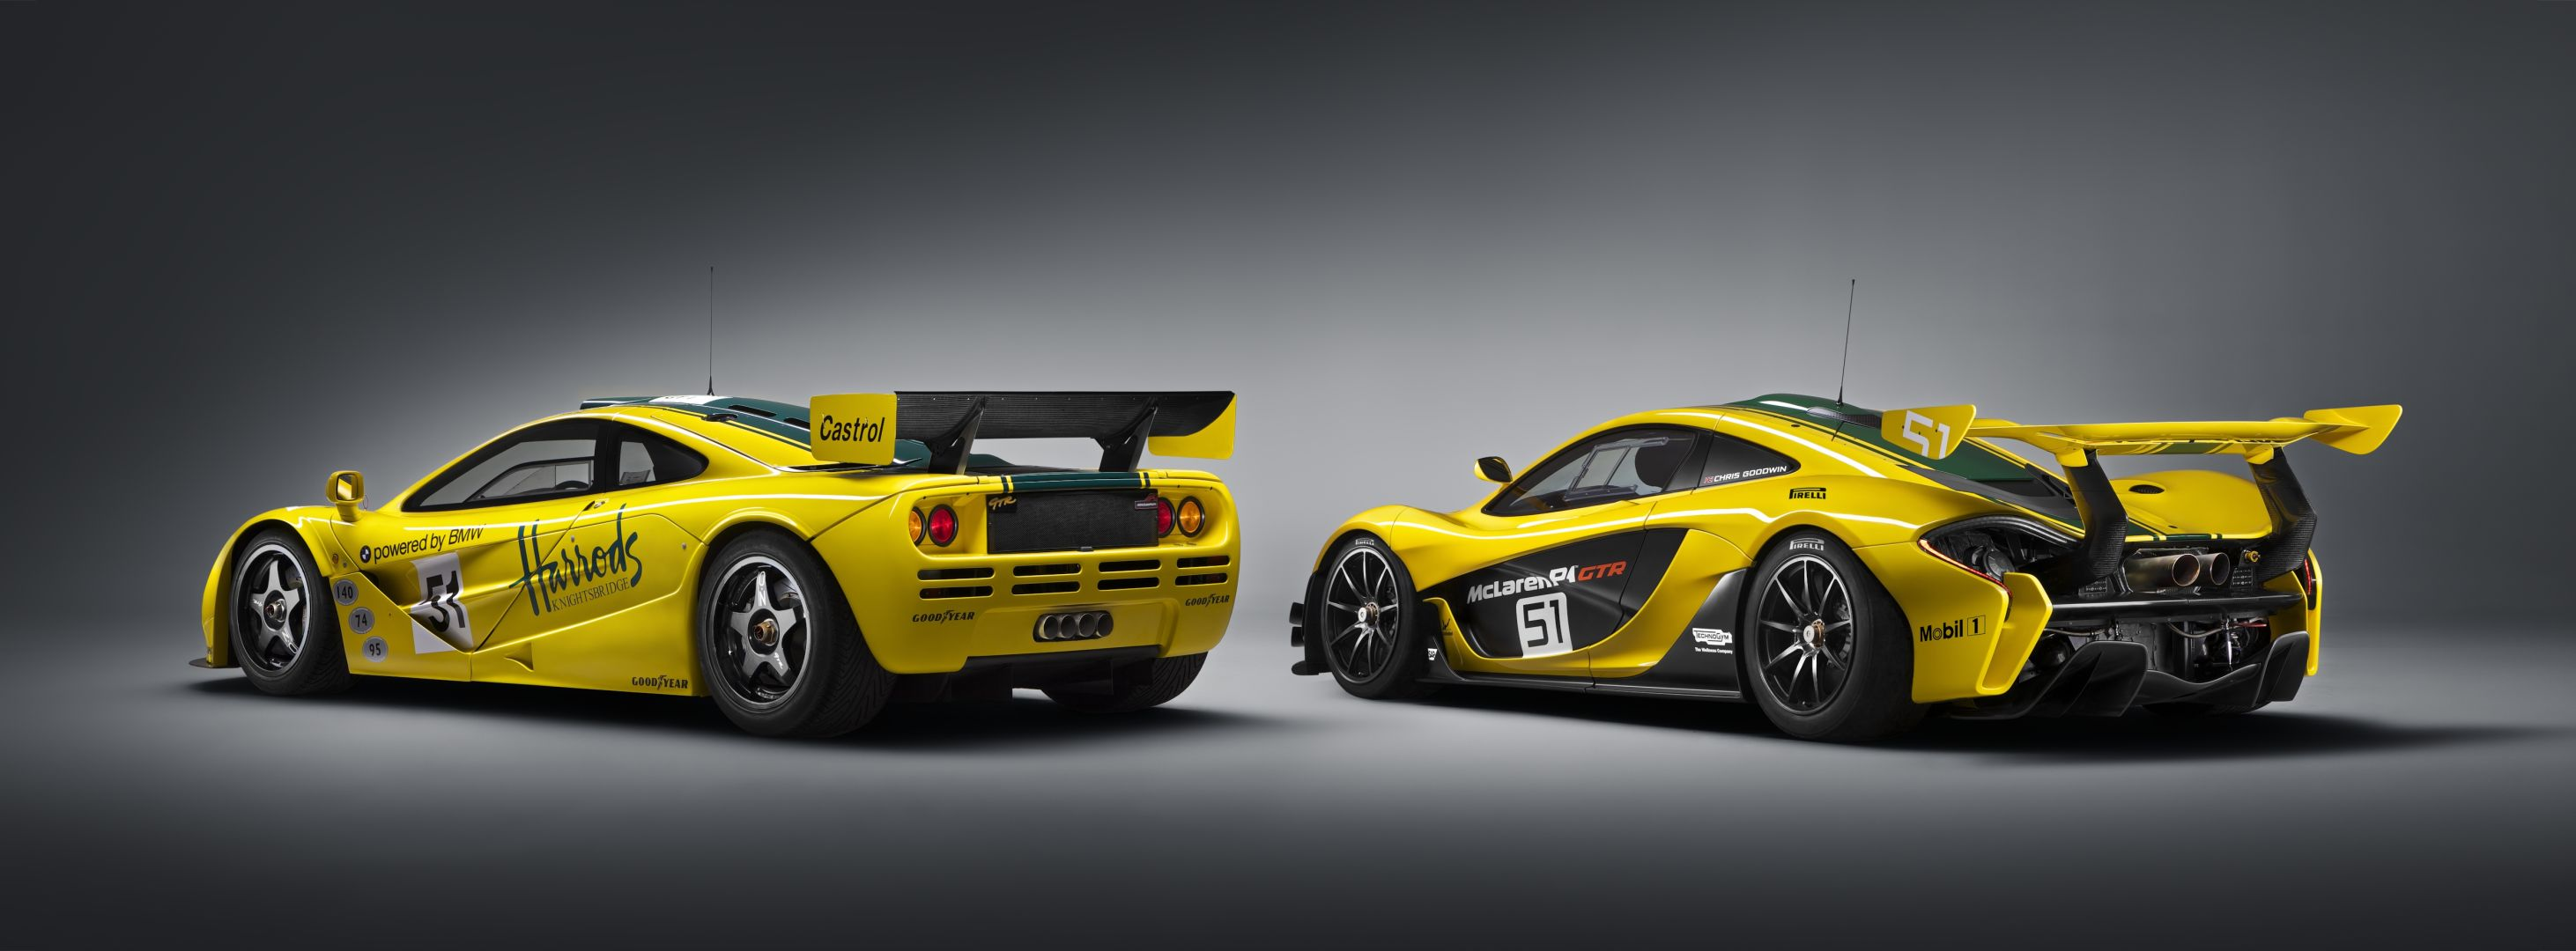 2015 mclaren p1 gtr unveiled ahead of geneva motor show debut autoevolution. Black Bedroom Furniture Sets. Home Design Ideas